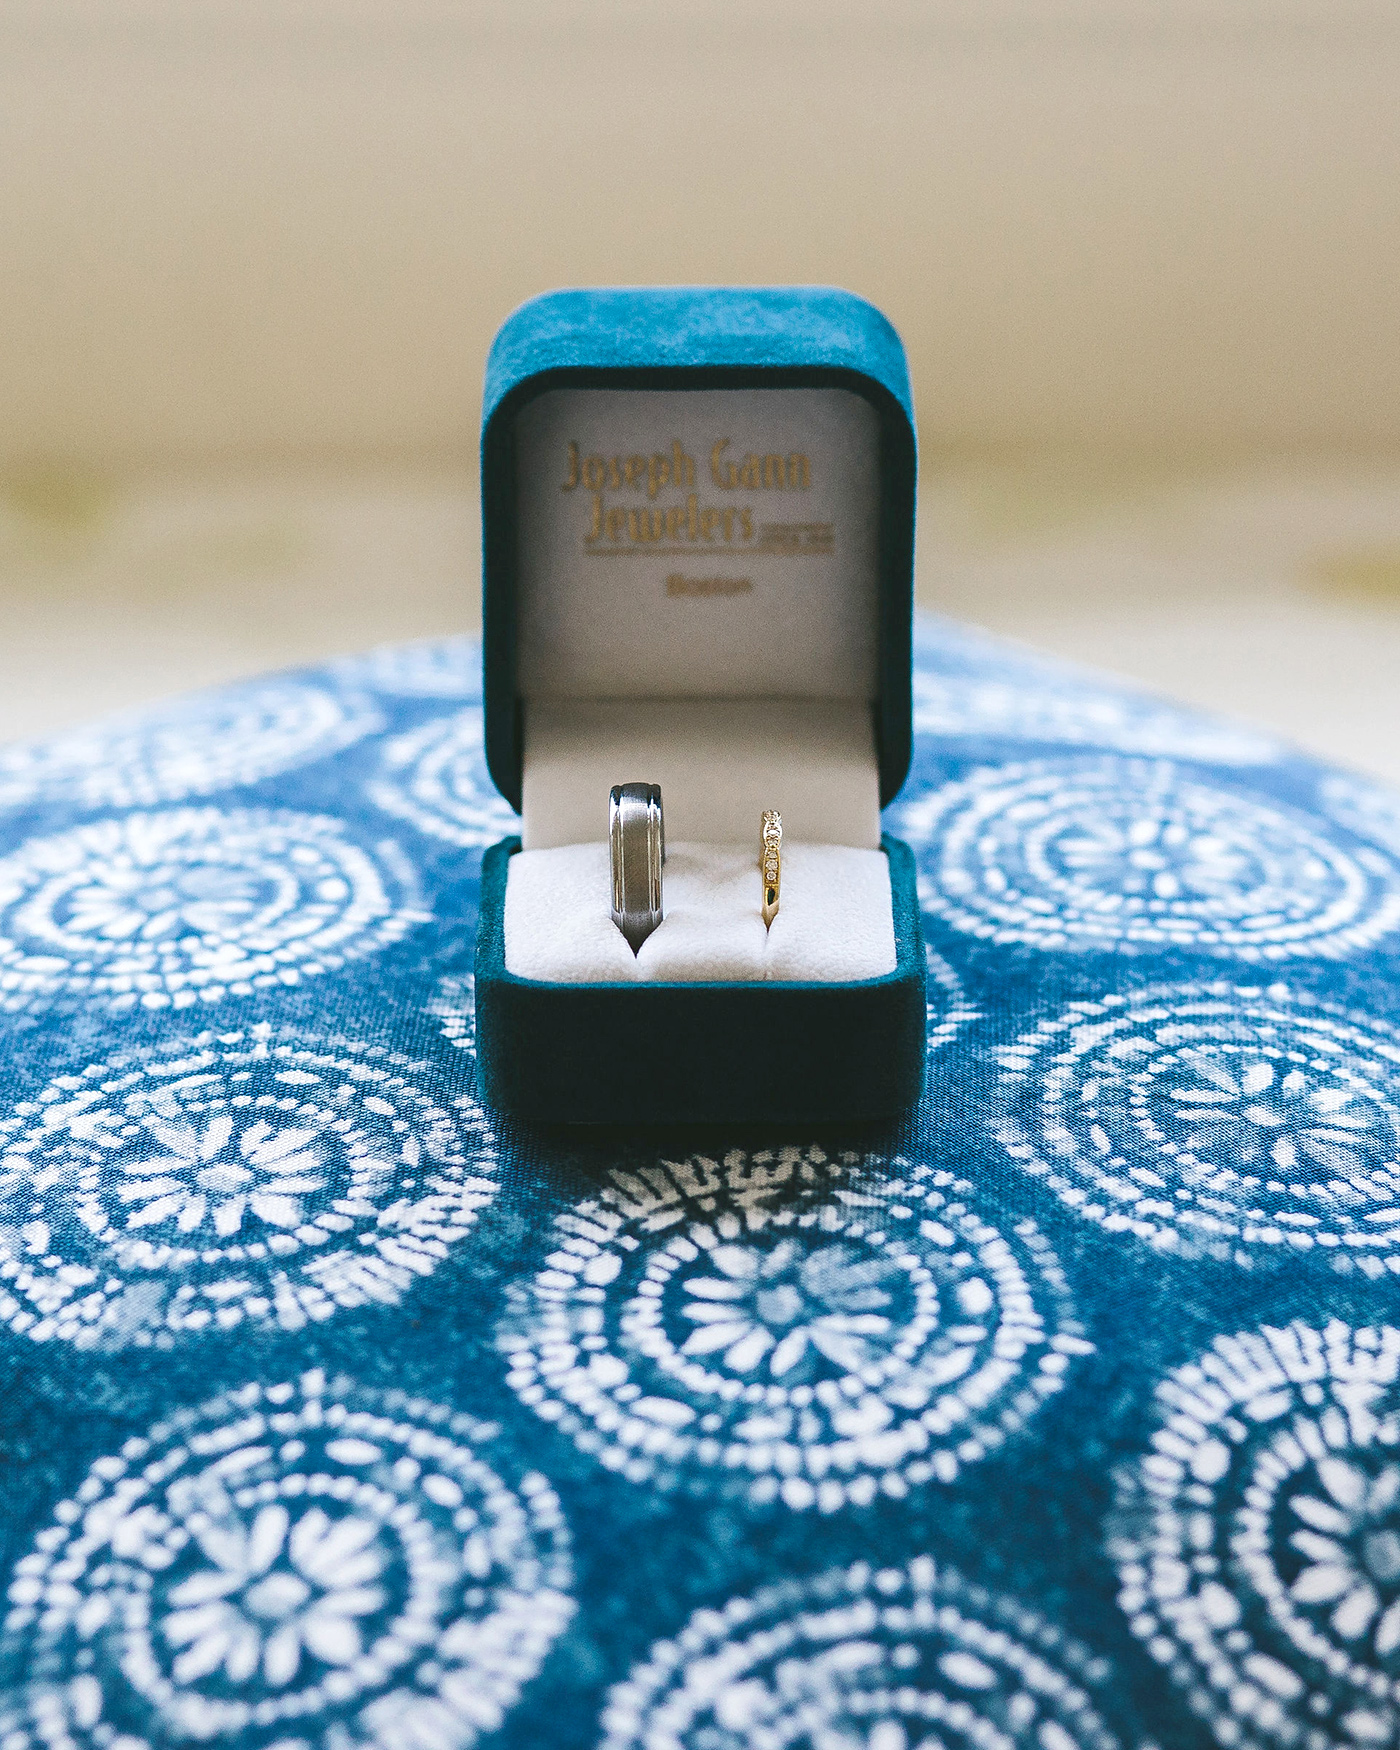 bride groom wedding bands in blue box